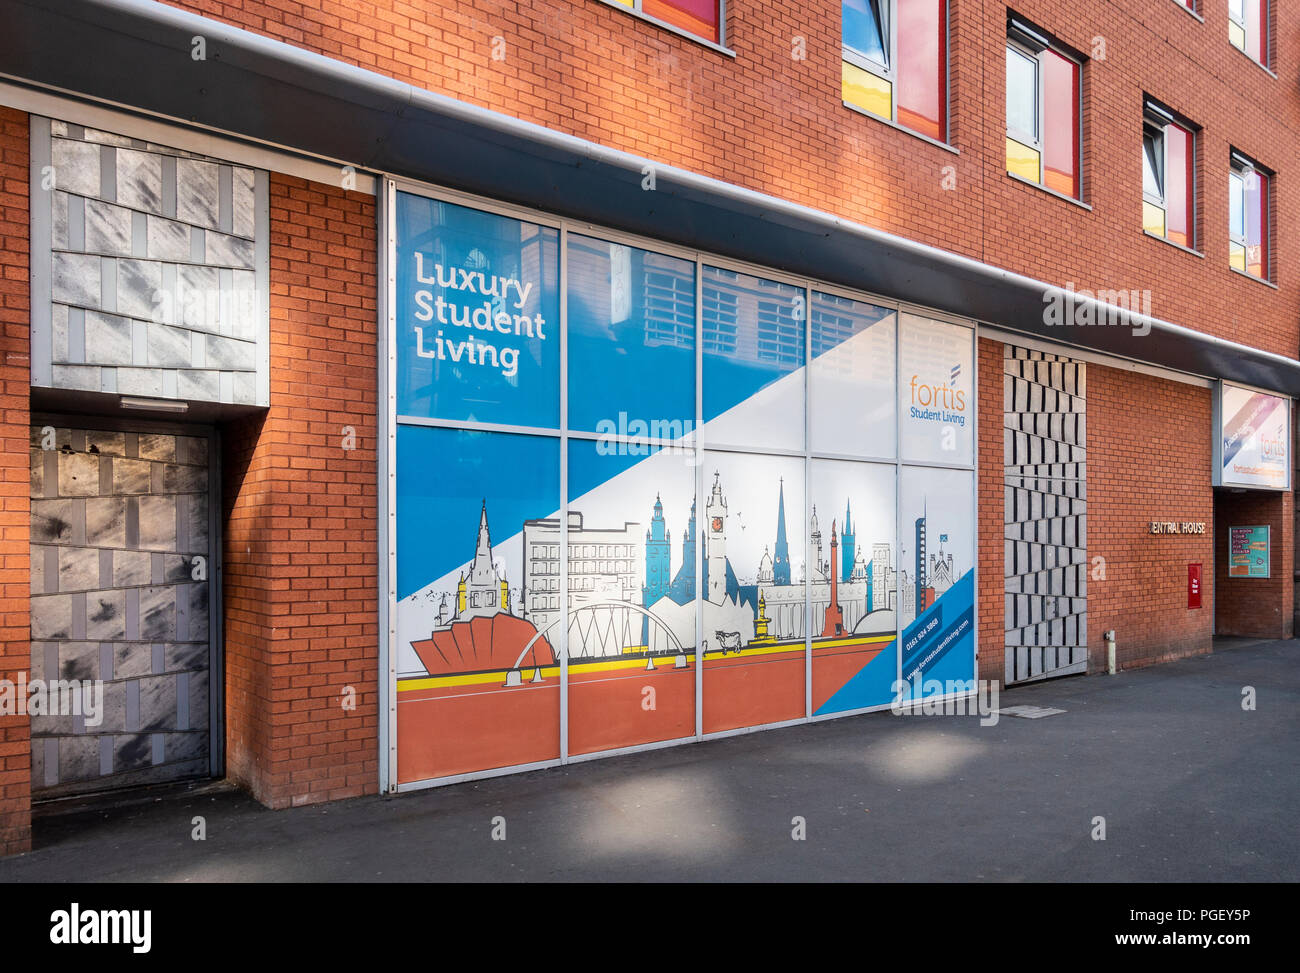 Exterior of private student accommodation run by Fortis, in Glasgow city centre. There is a stylised Glasgow 'skyline' artwork panel. - Stock Image